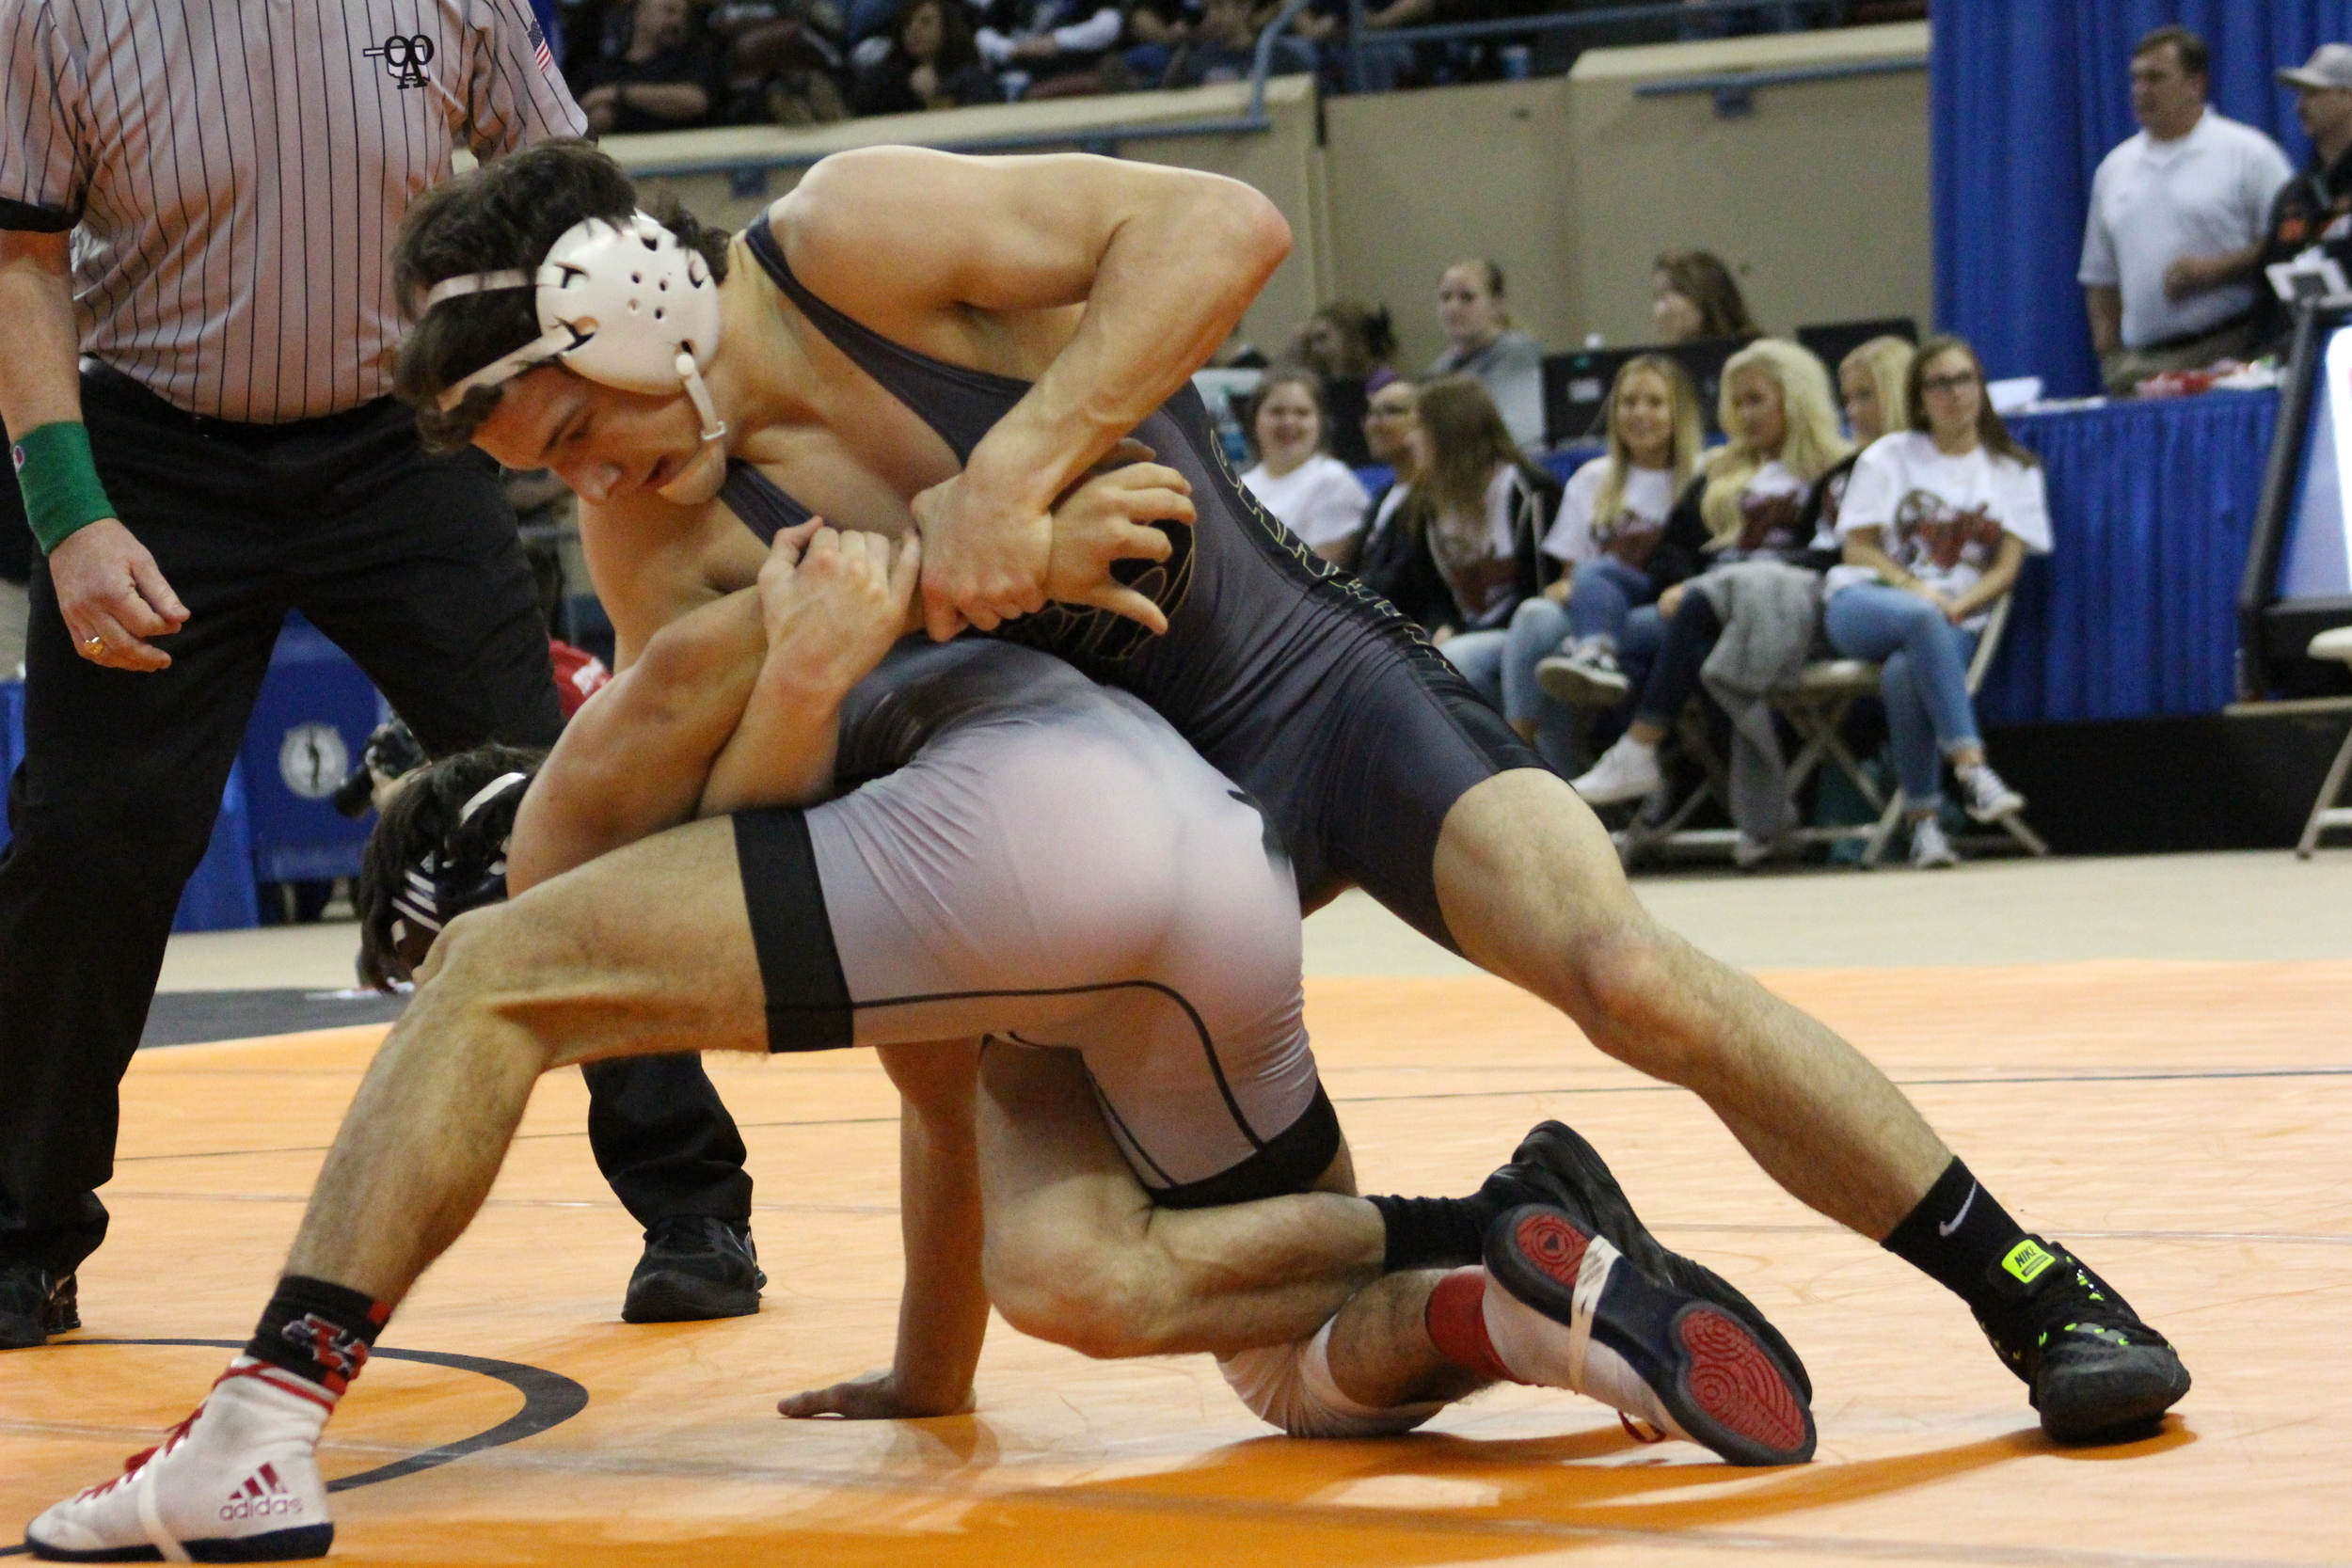 Junior Beau Bratcher pinned both of his opponents at State en route to the finals.